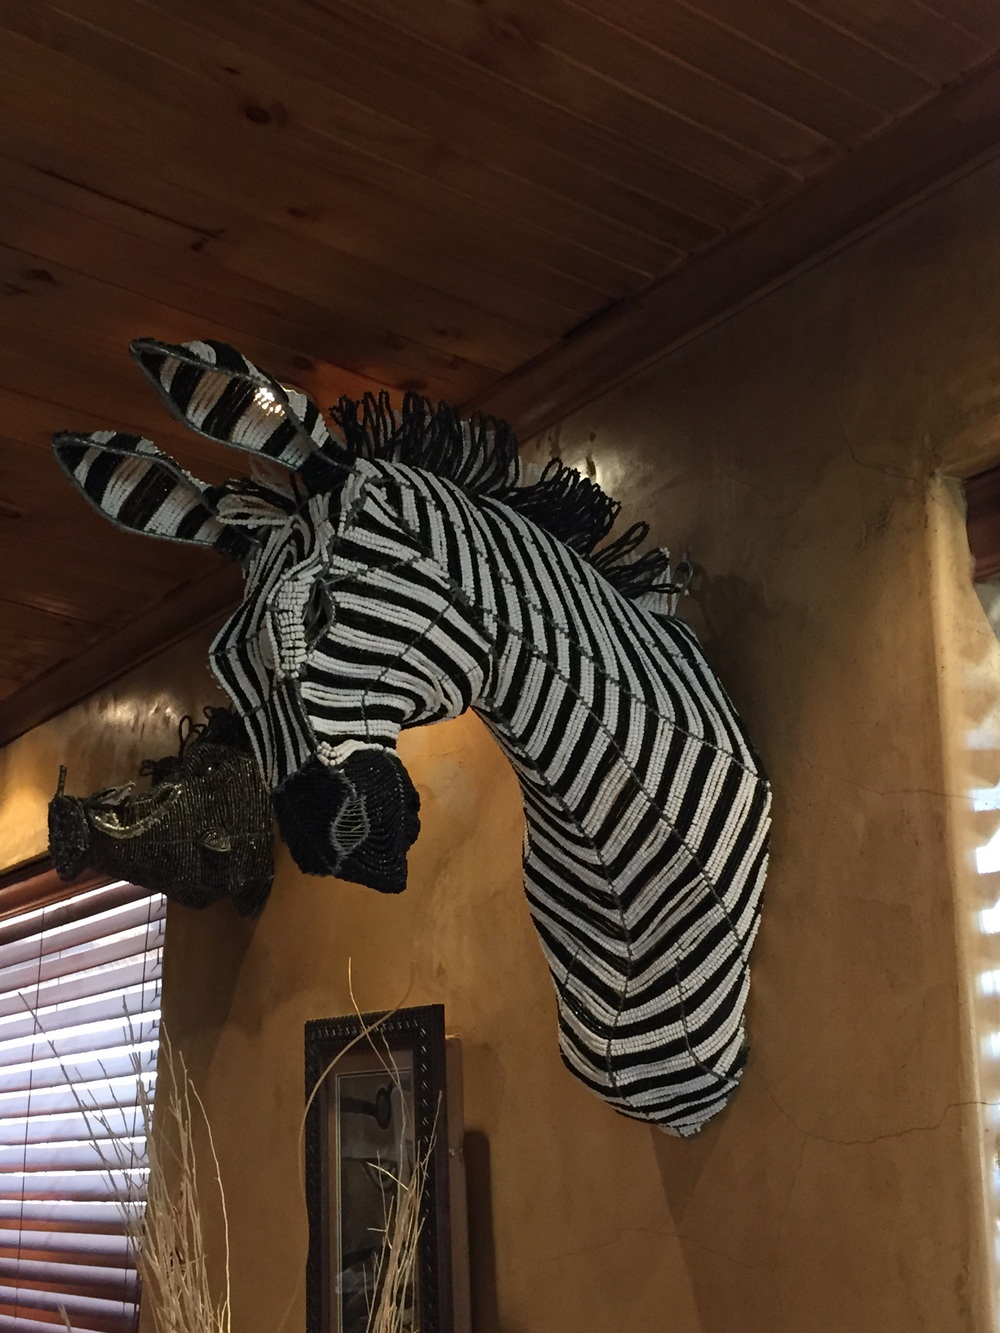 I especially love this zebra!